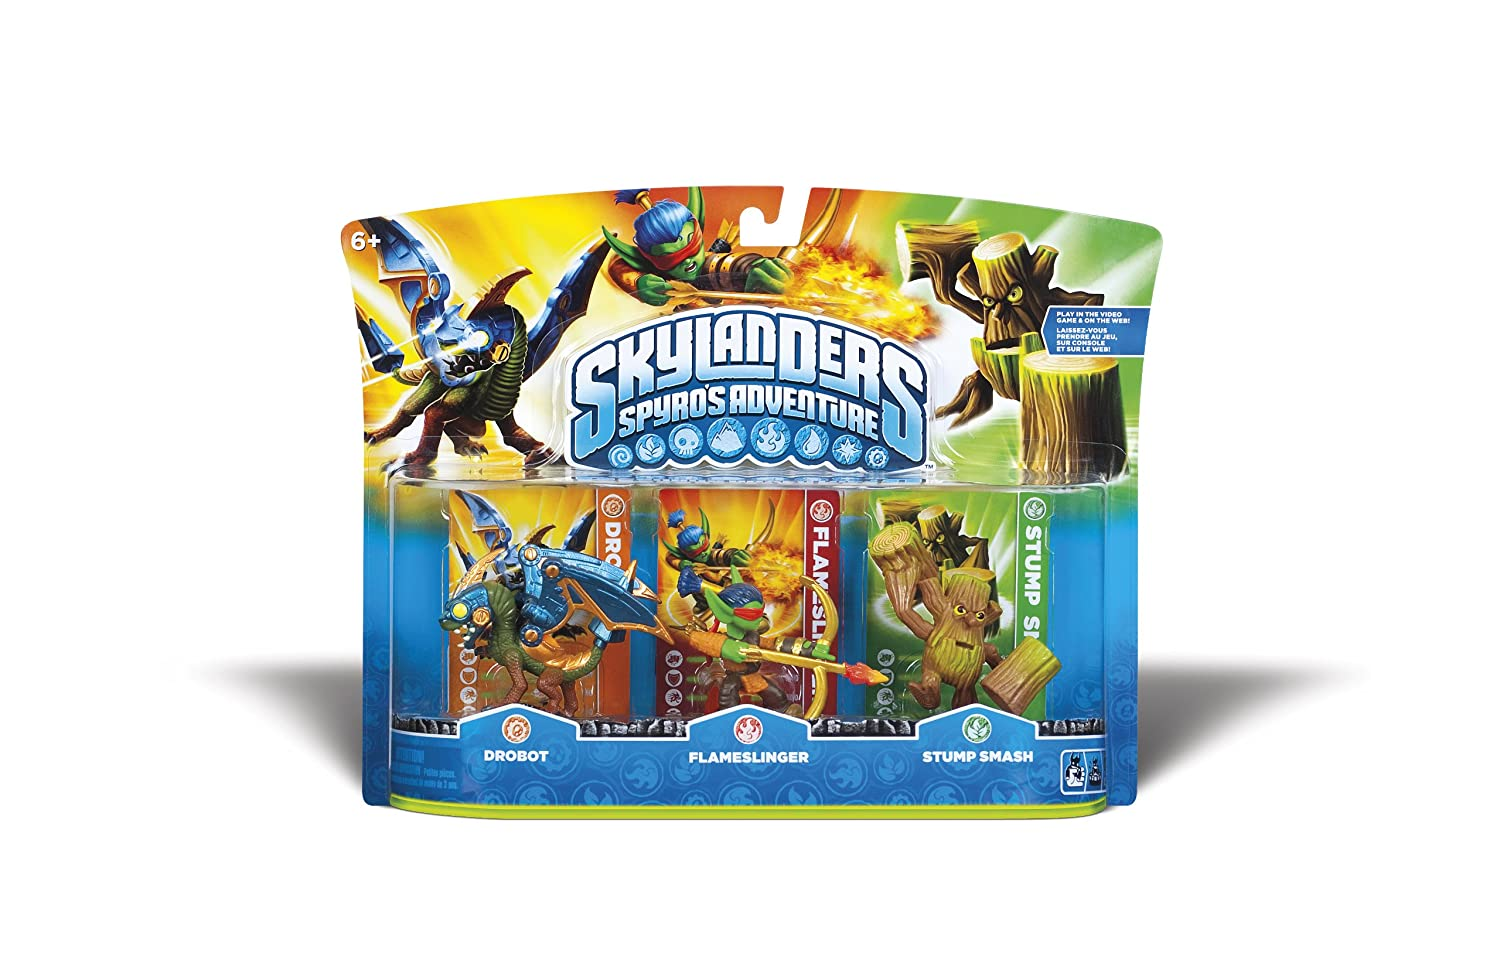 Skylanders Spyro Adventure Triple Character Pack 3500mah battery for samsung galaxy note iii 3 n9000 9005 900a 9002